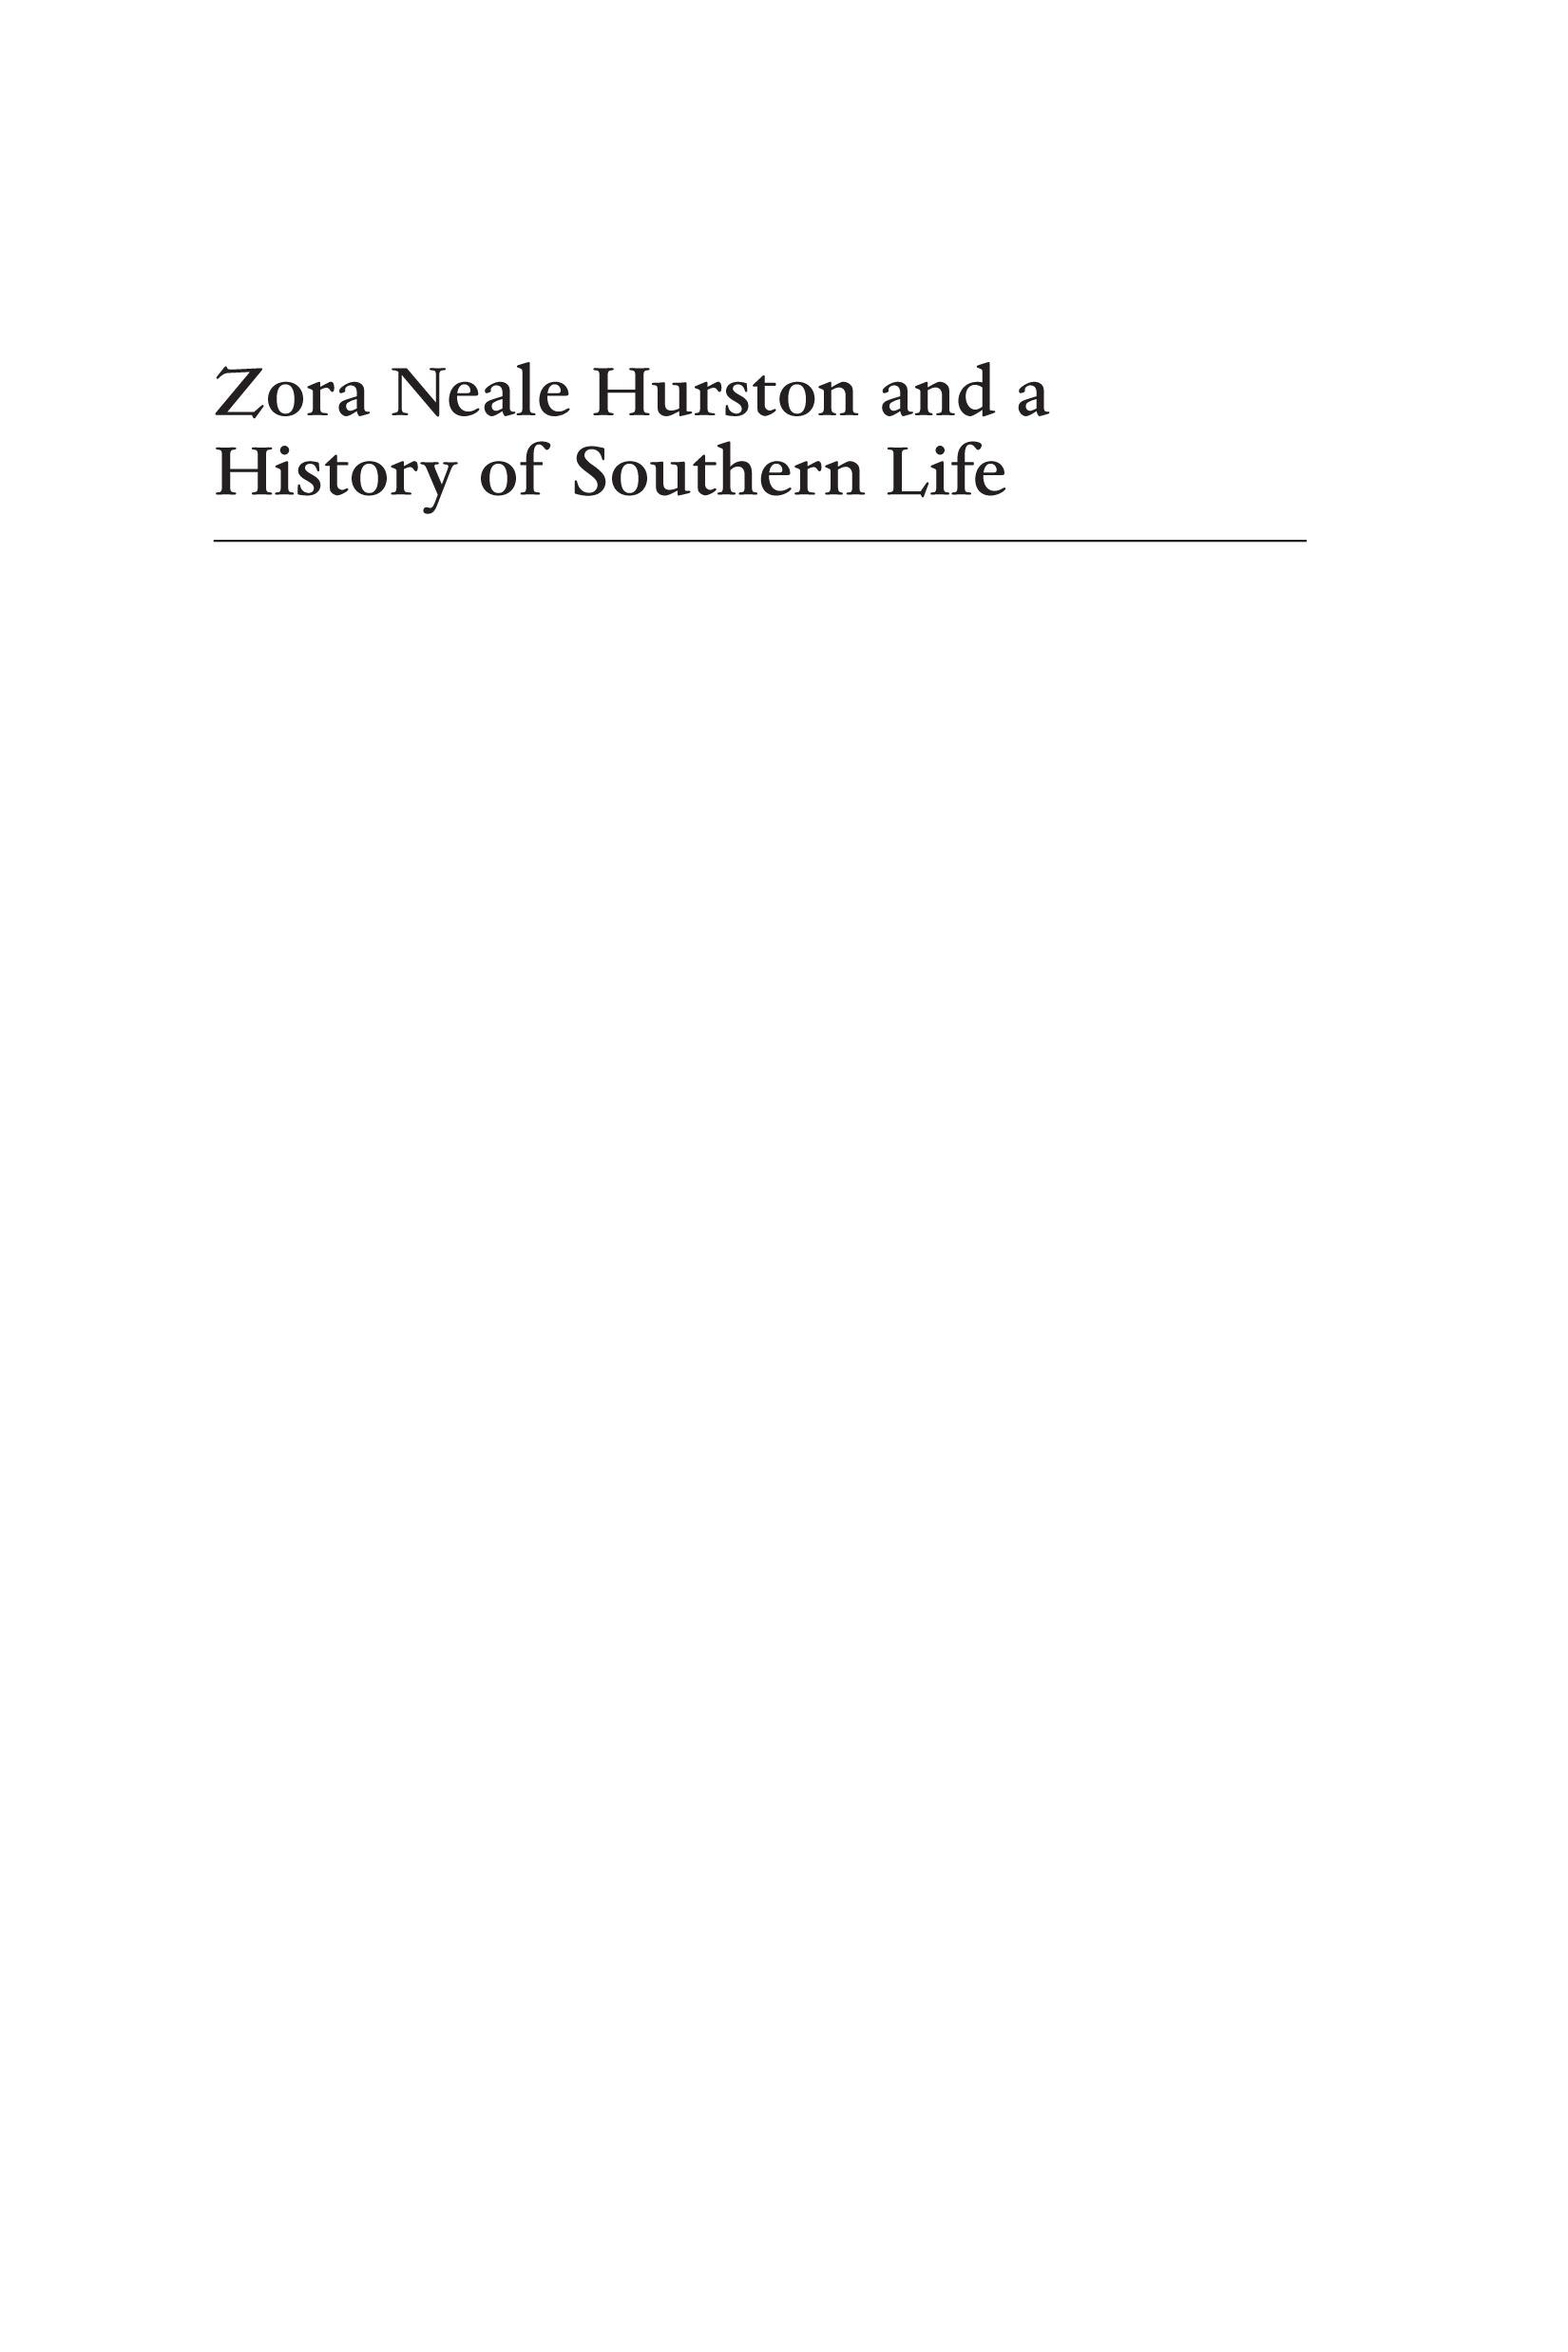 Zora Neale Hurston and a History of Southern Life. Critical Perspectives on the Past.